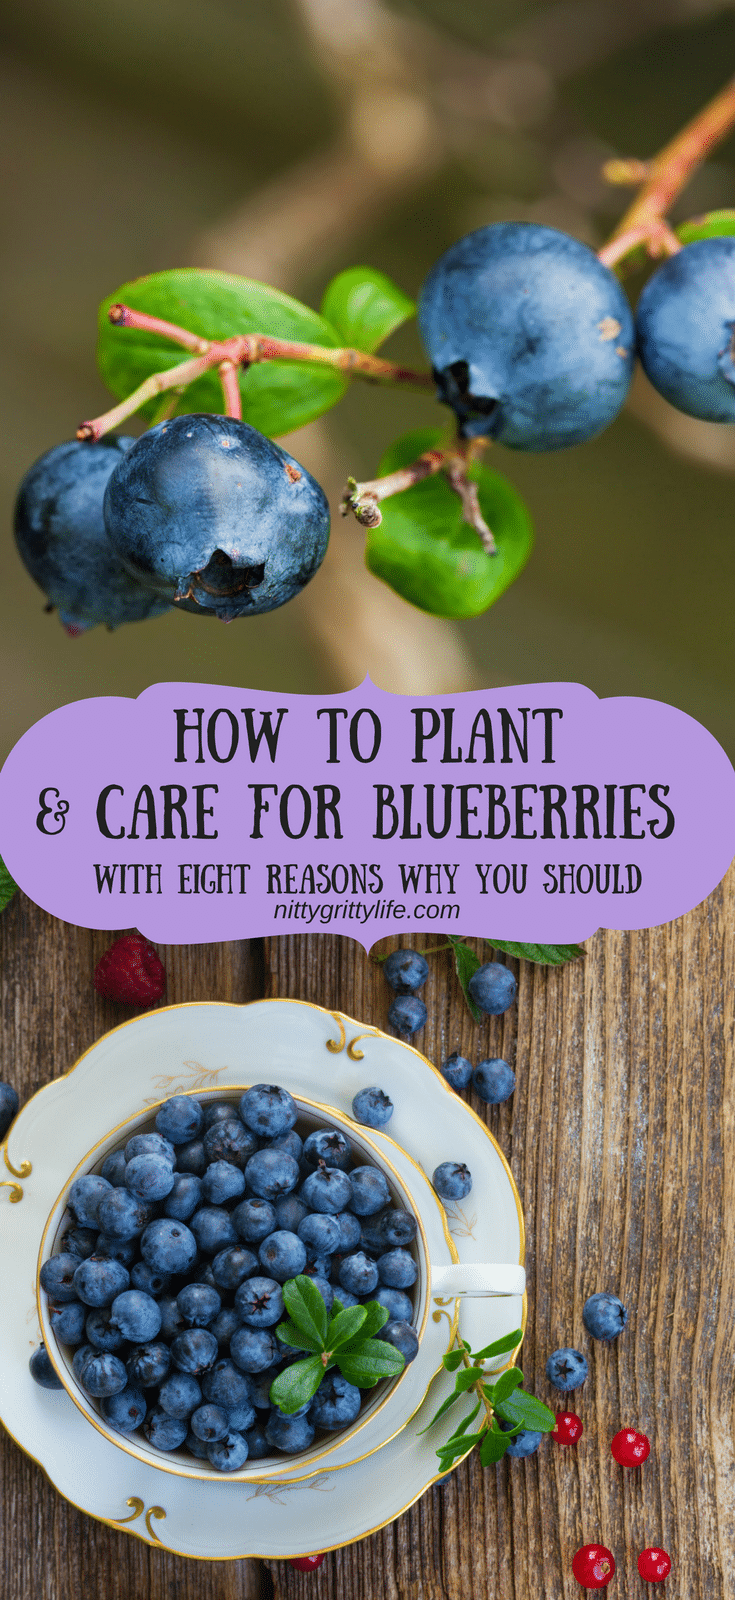 Blueberries are a summertime treat from which the harvests pay dividends all year long by way of tasty treats. Learn how to plant and care for blueberries and get some tasty recipes for baked goods, jams, and syrups! #blueberries #growingblueberries #blueberryrecipes #howtogrowblueberries